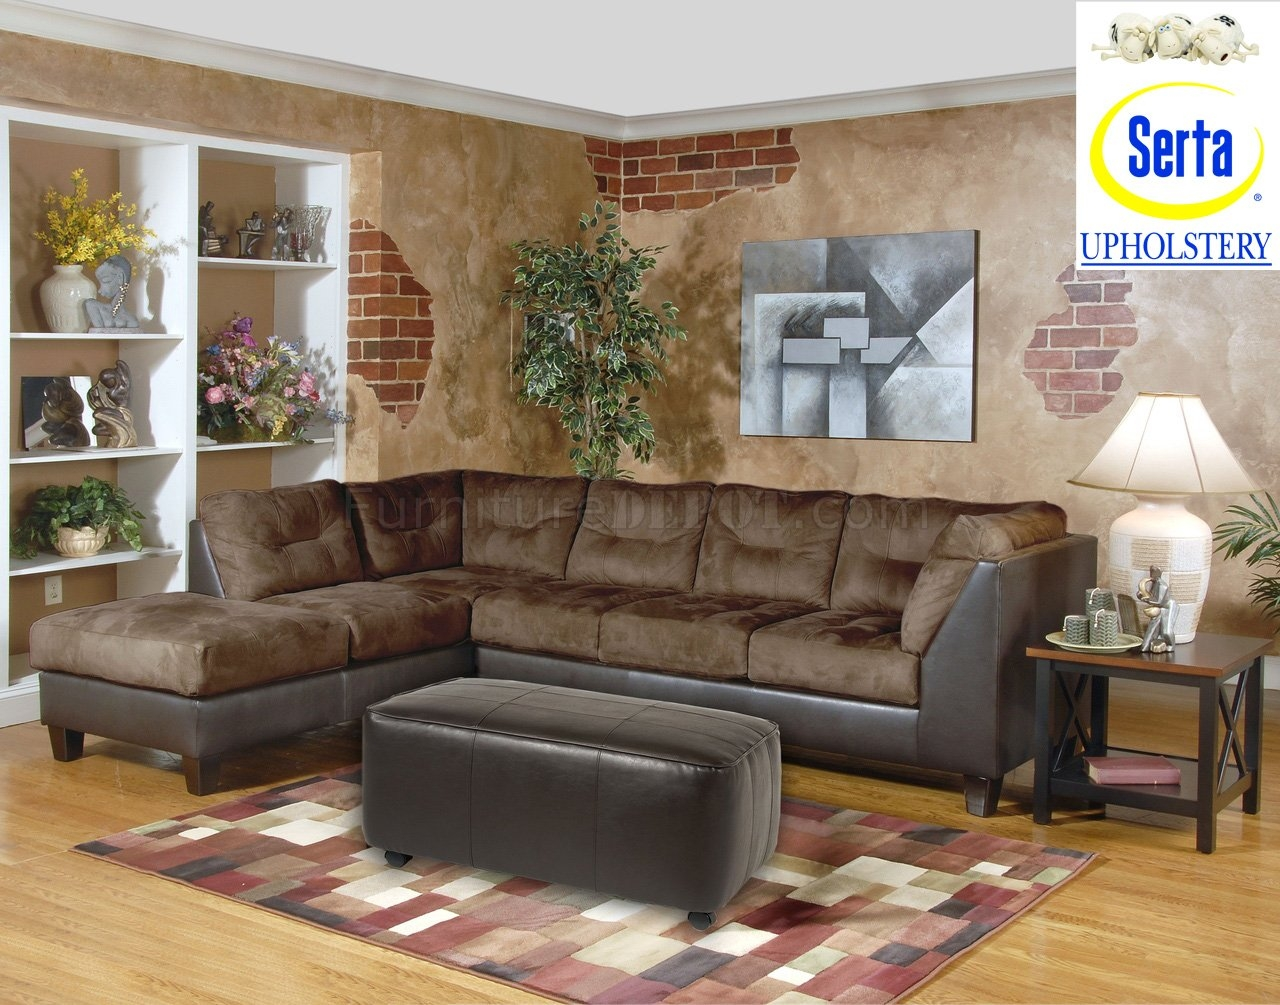 Sectionals Used Sectionals For Sale Sectional Sofa Craigslist With Regard To Craigslist Sectional Sofa (#10 of 12)